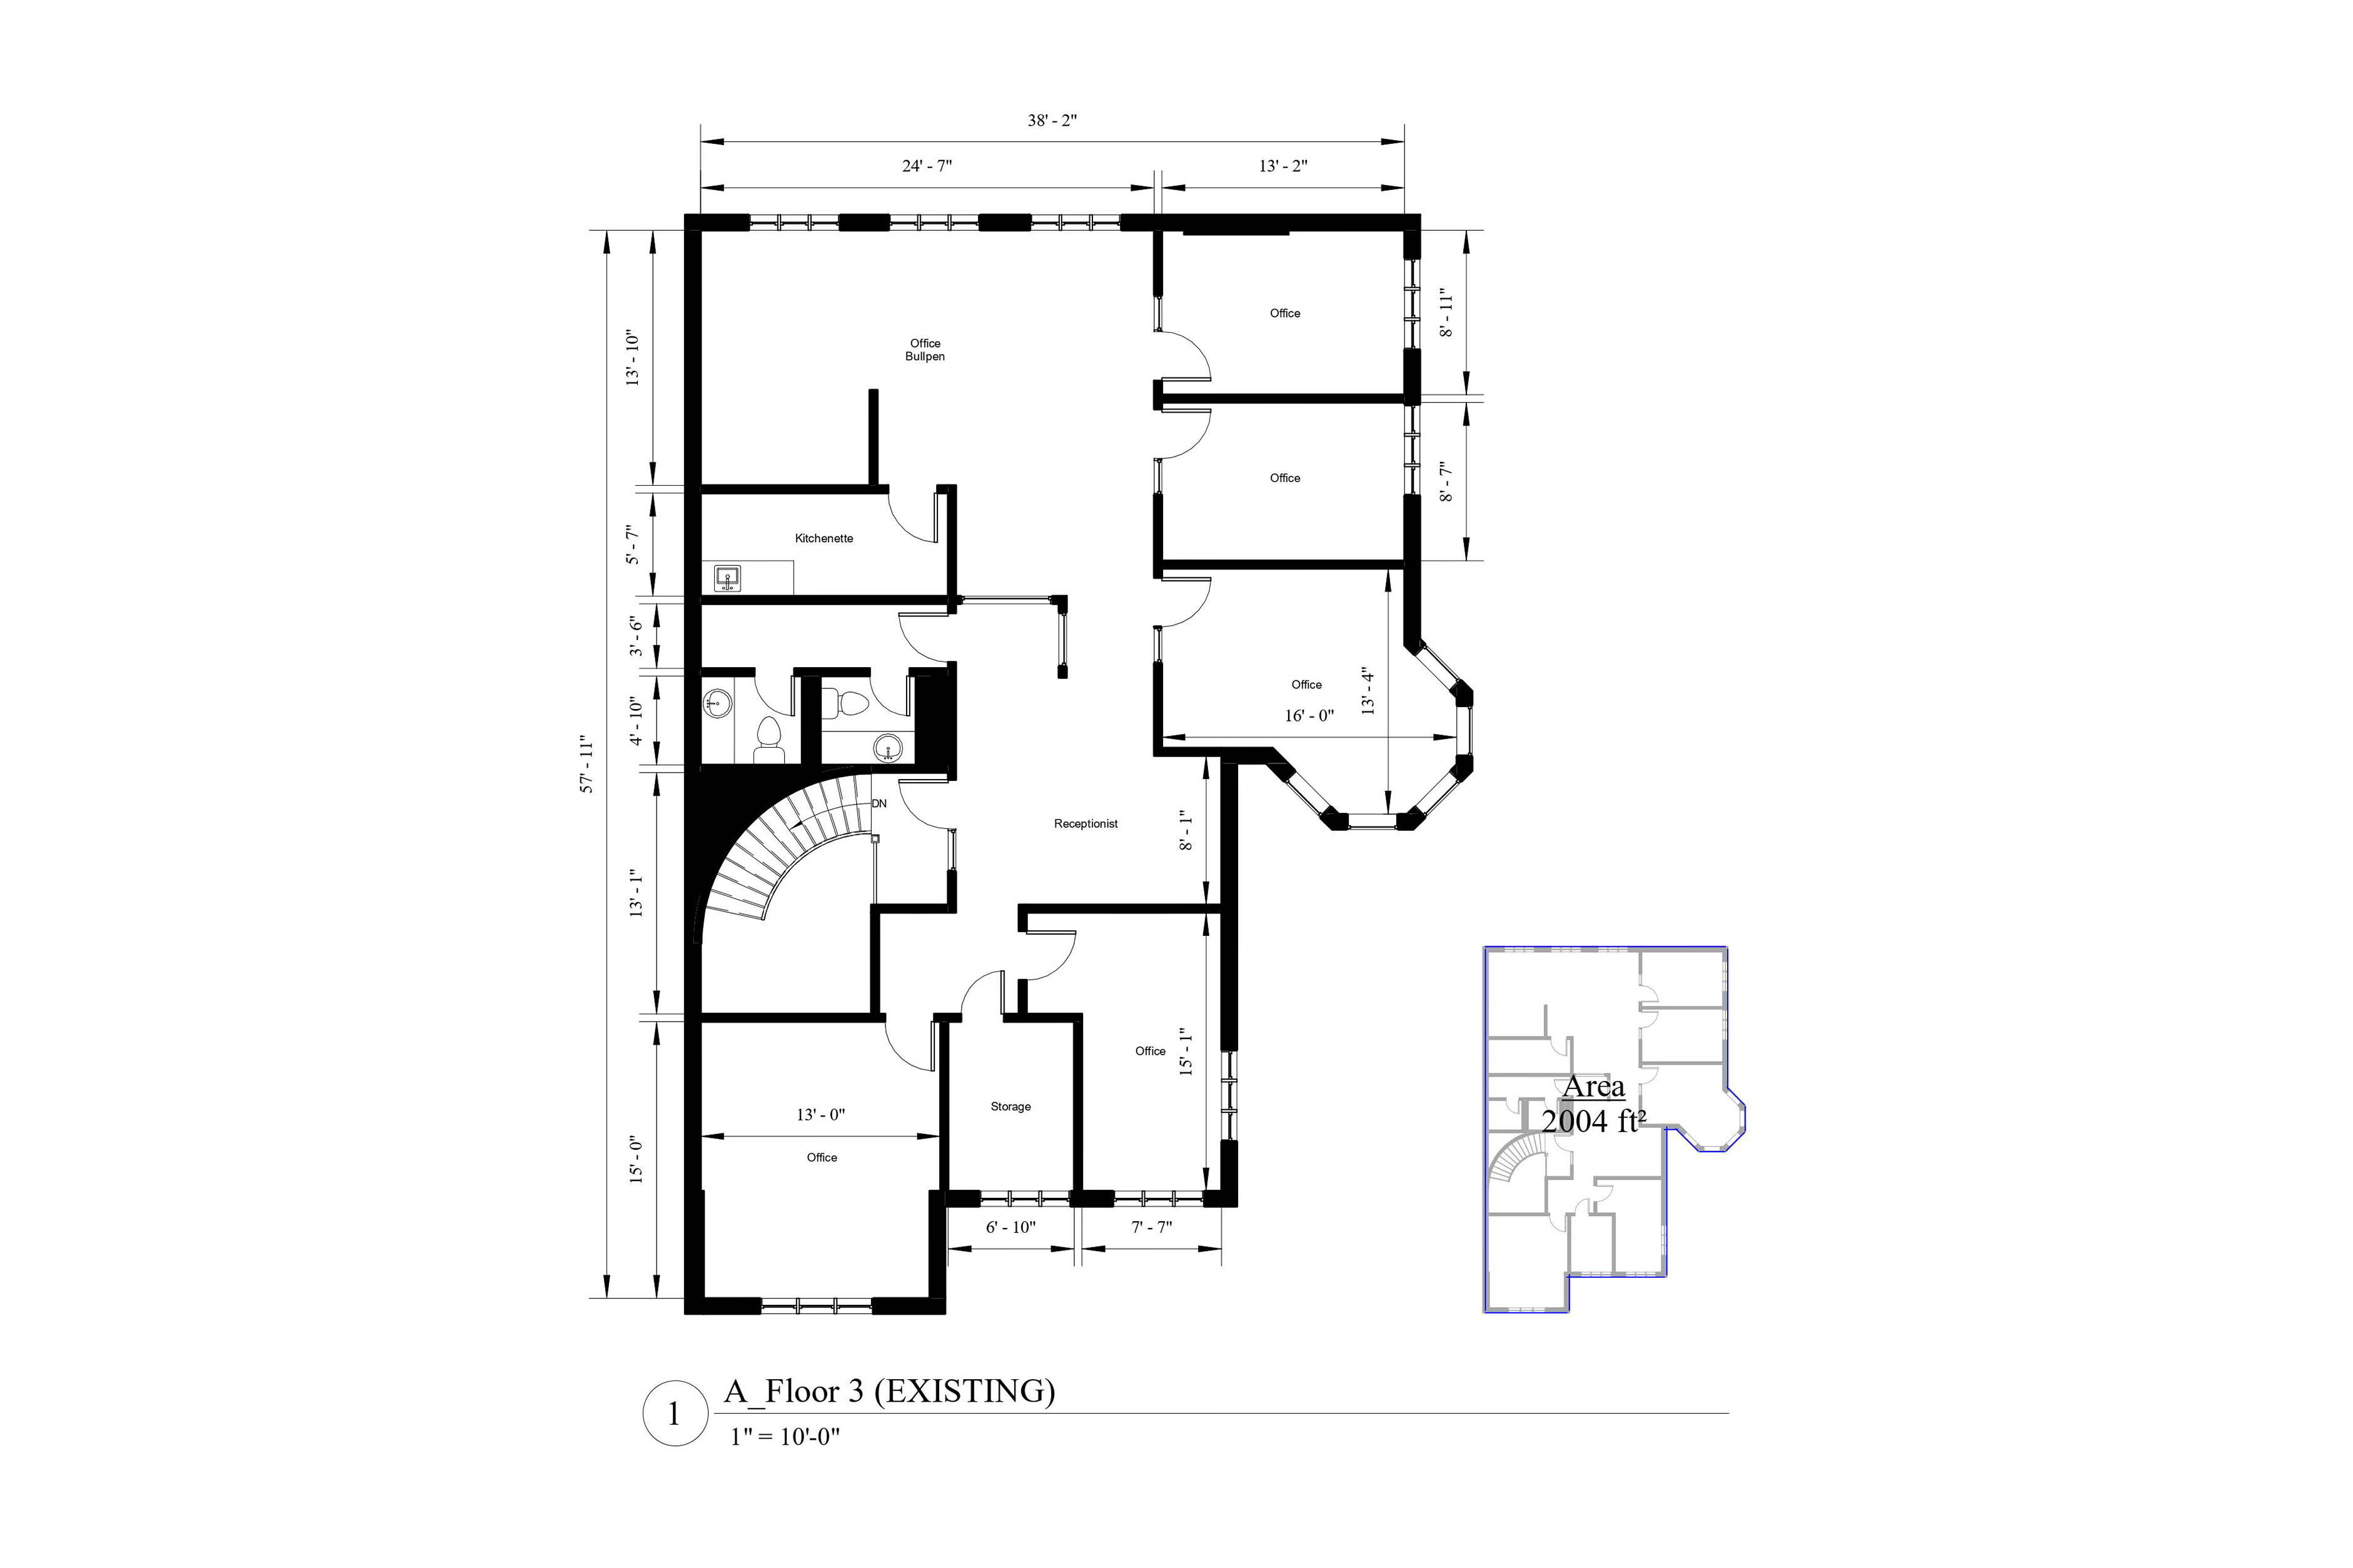 an AutoCad drawing of the floor plan and the Area Analysis plan for a two thousand and four square foot residential house.